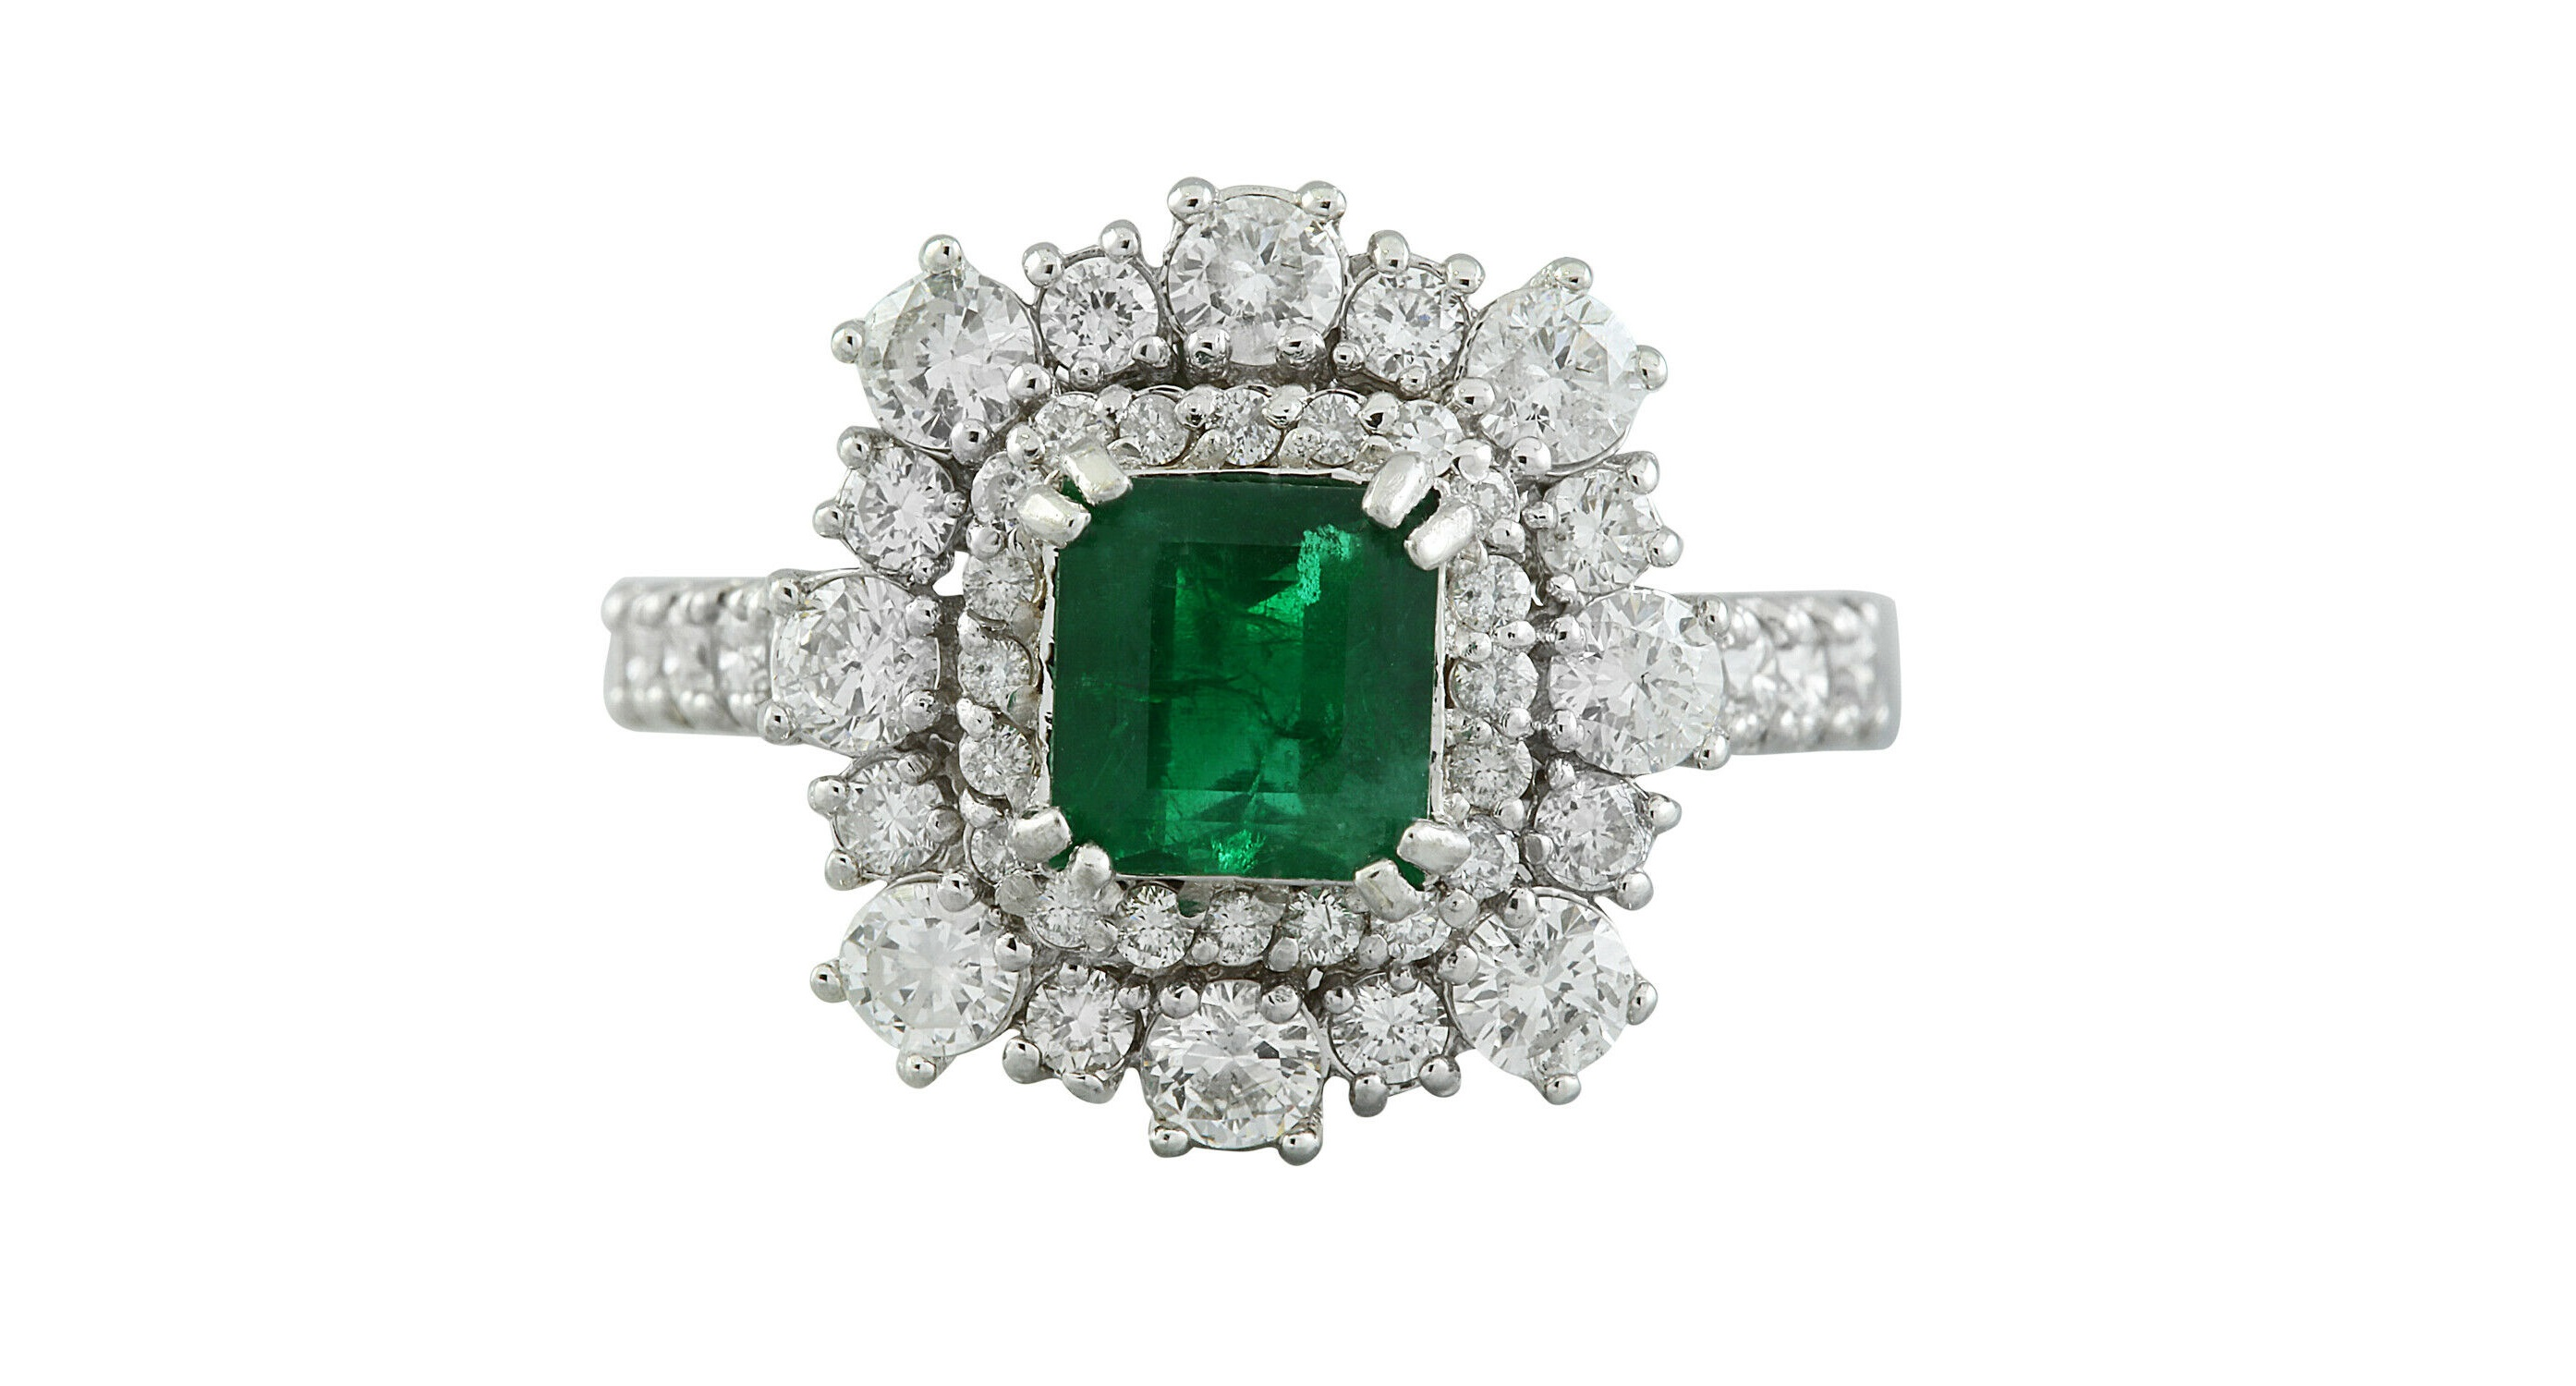 A Gorgeous 2.30 Carat Natural Emerald 18K Solid White Gold Luxury Diamond Ring